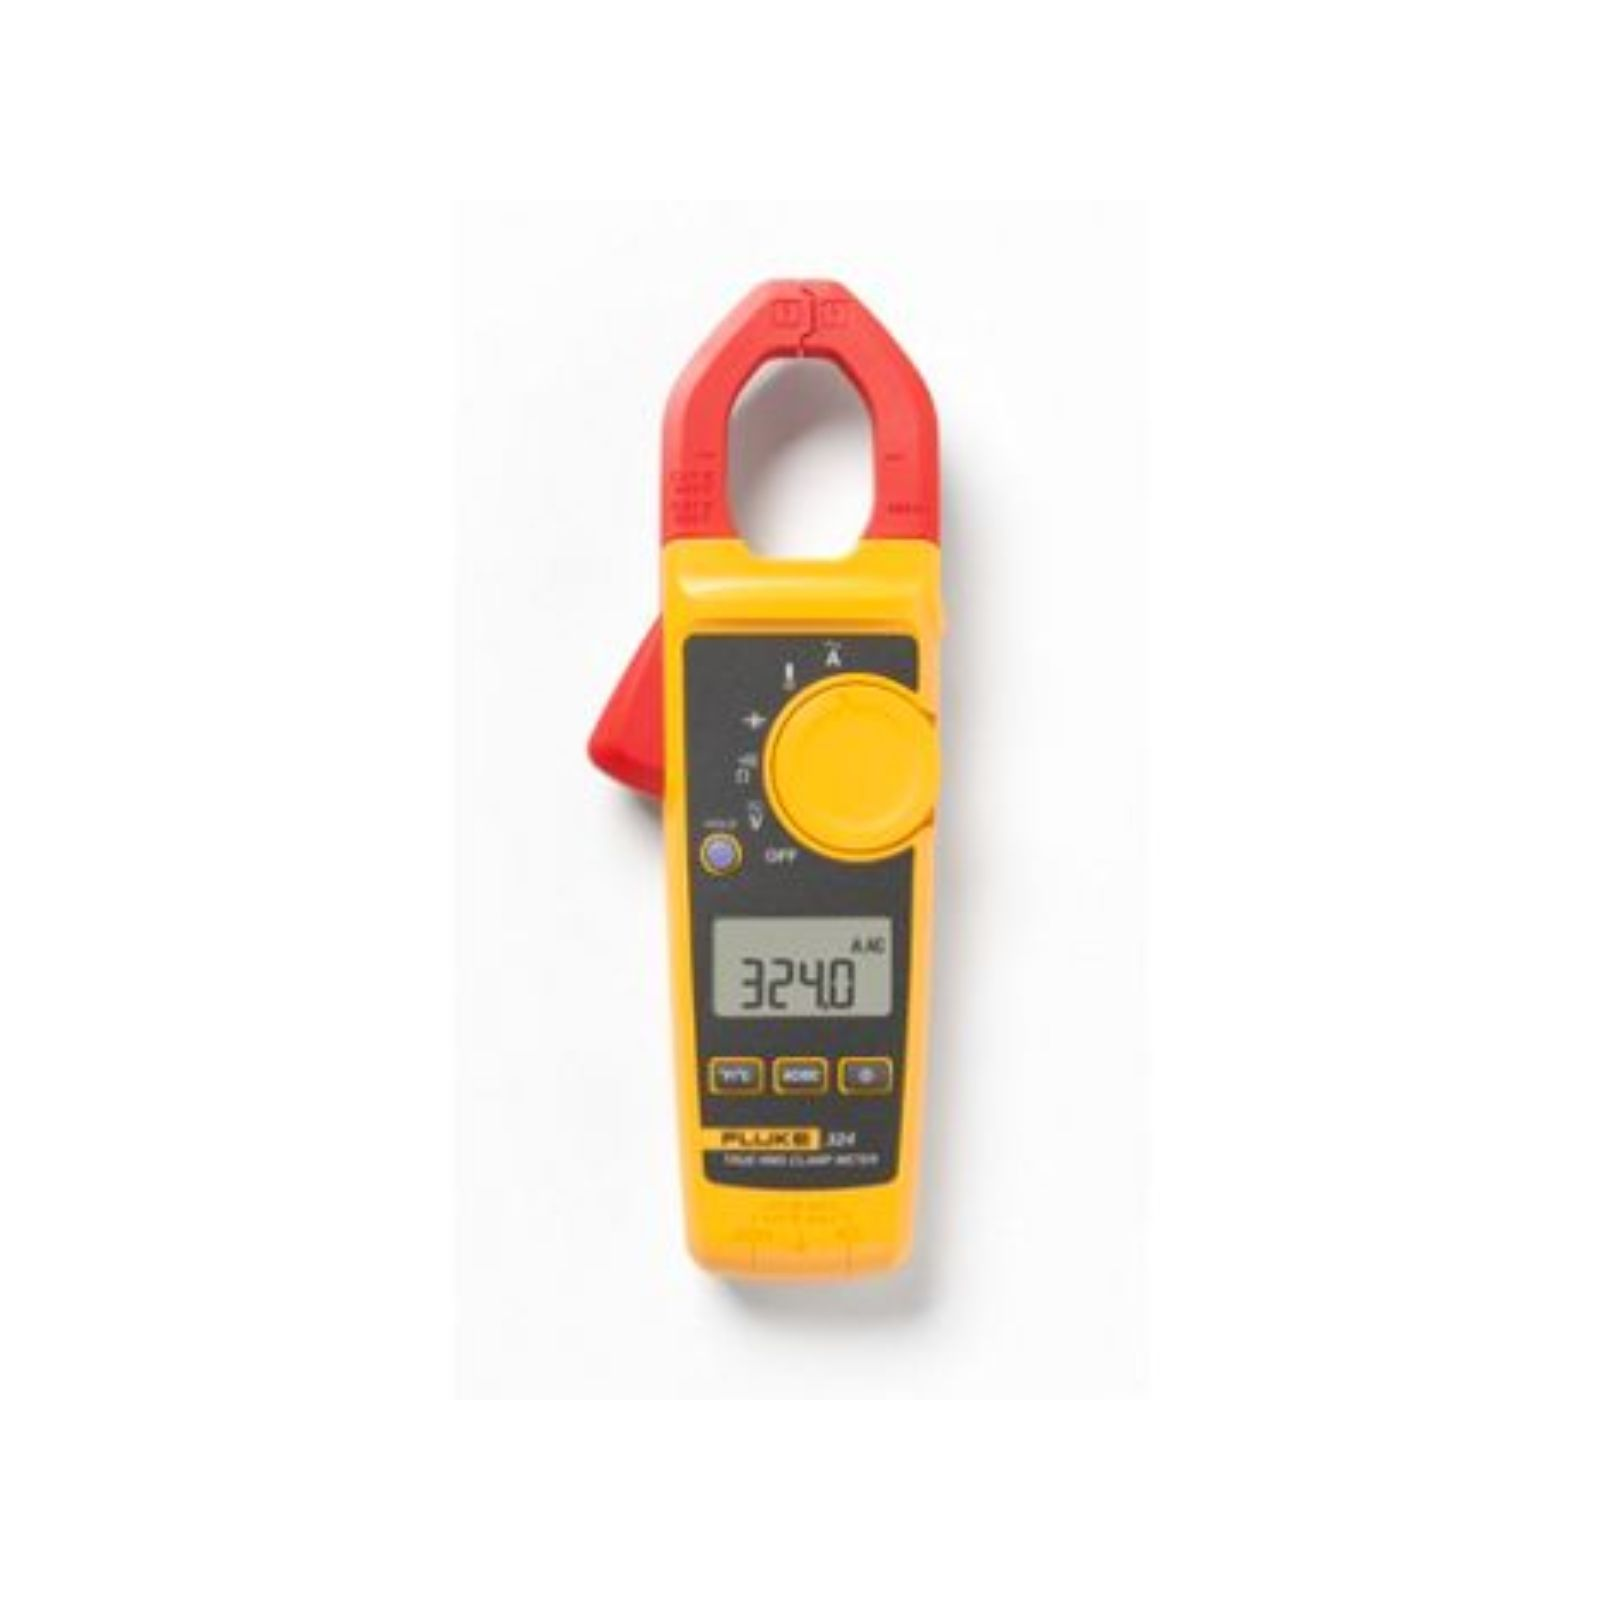 Fluke 4152637 - AC True RMS Clamp Meter, 400A, with Temperature